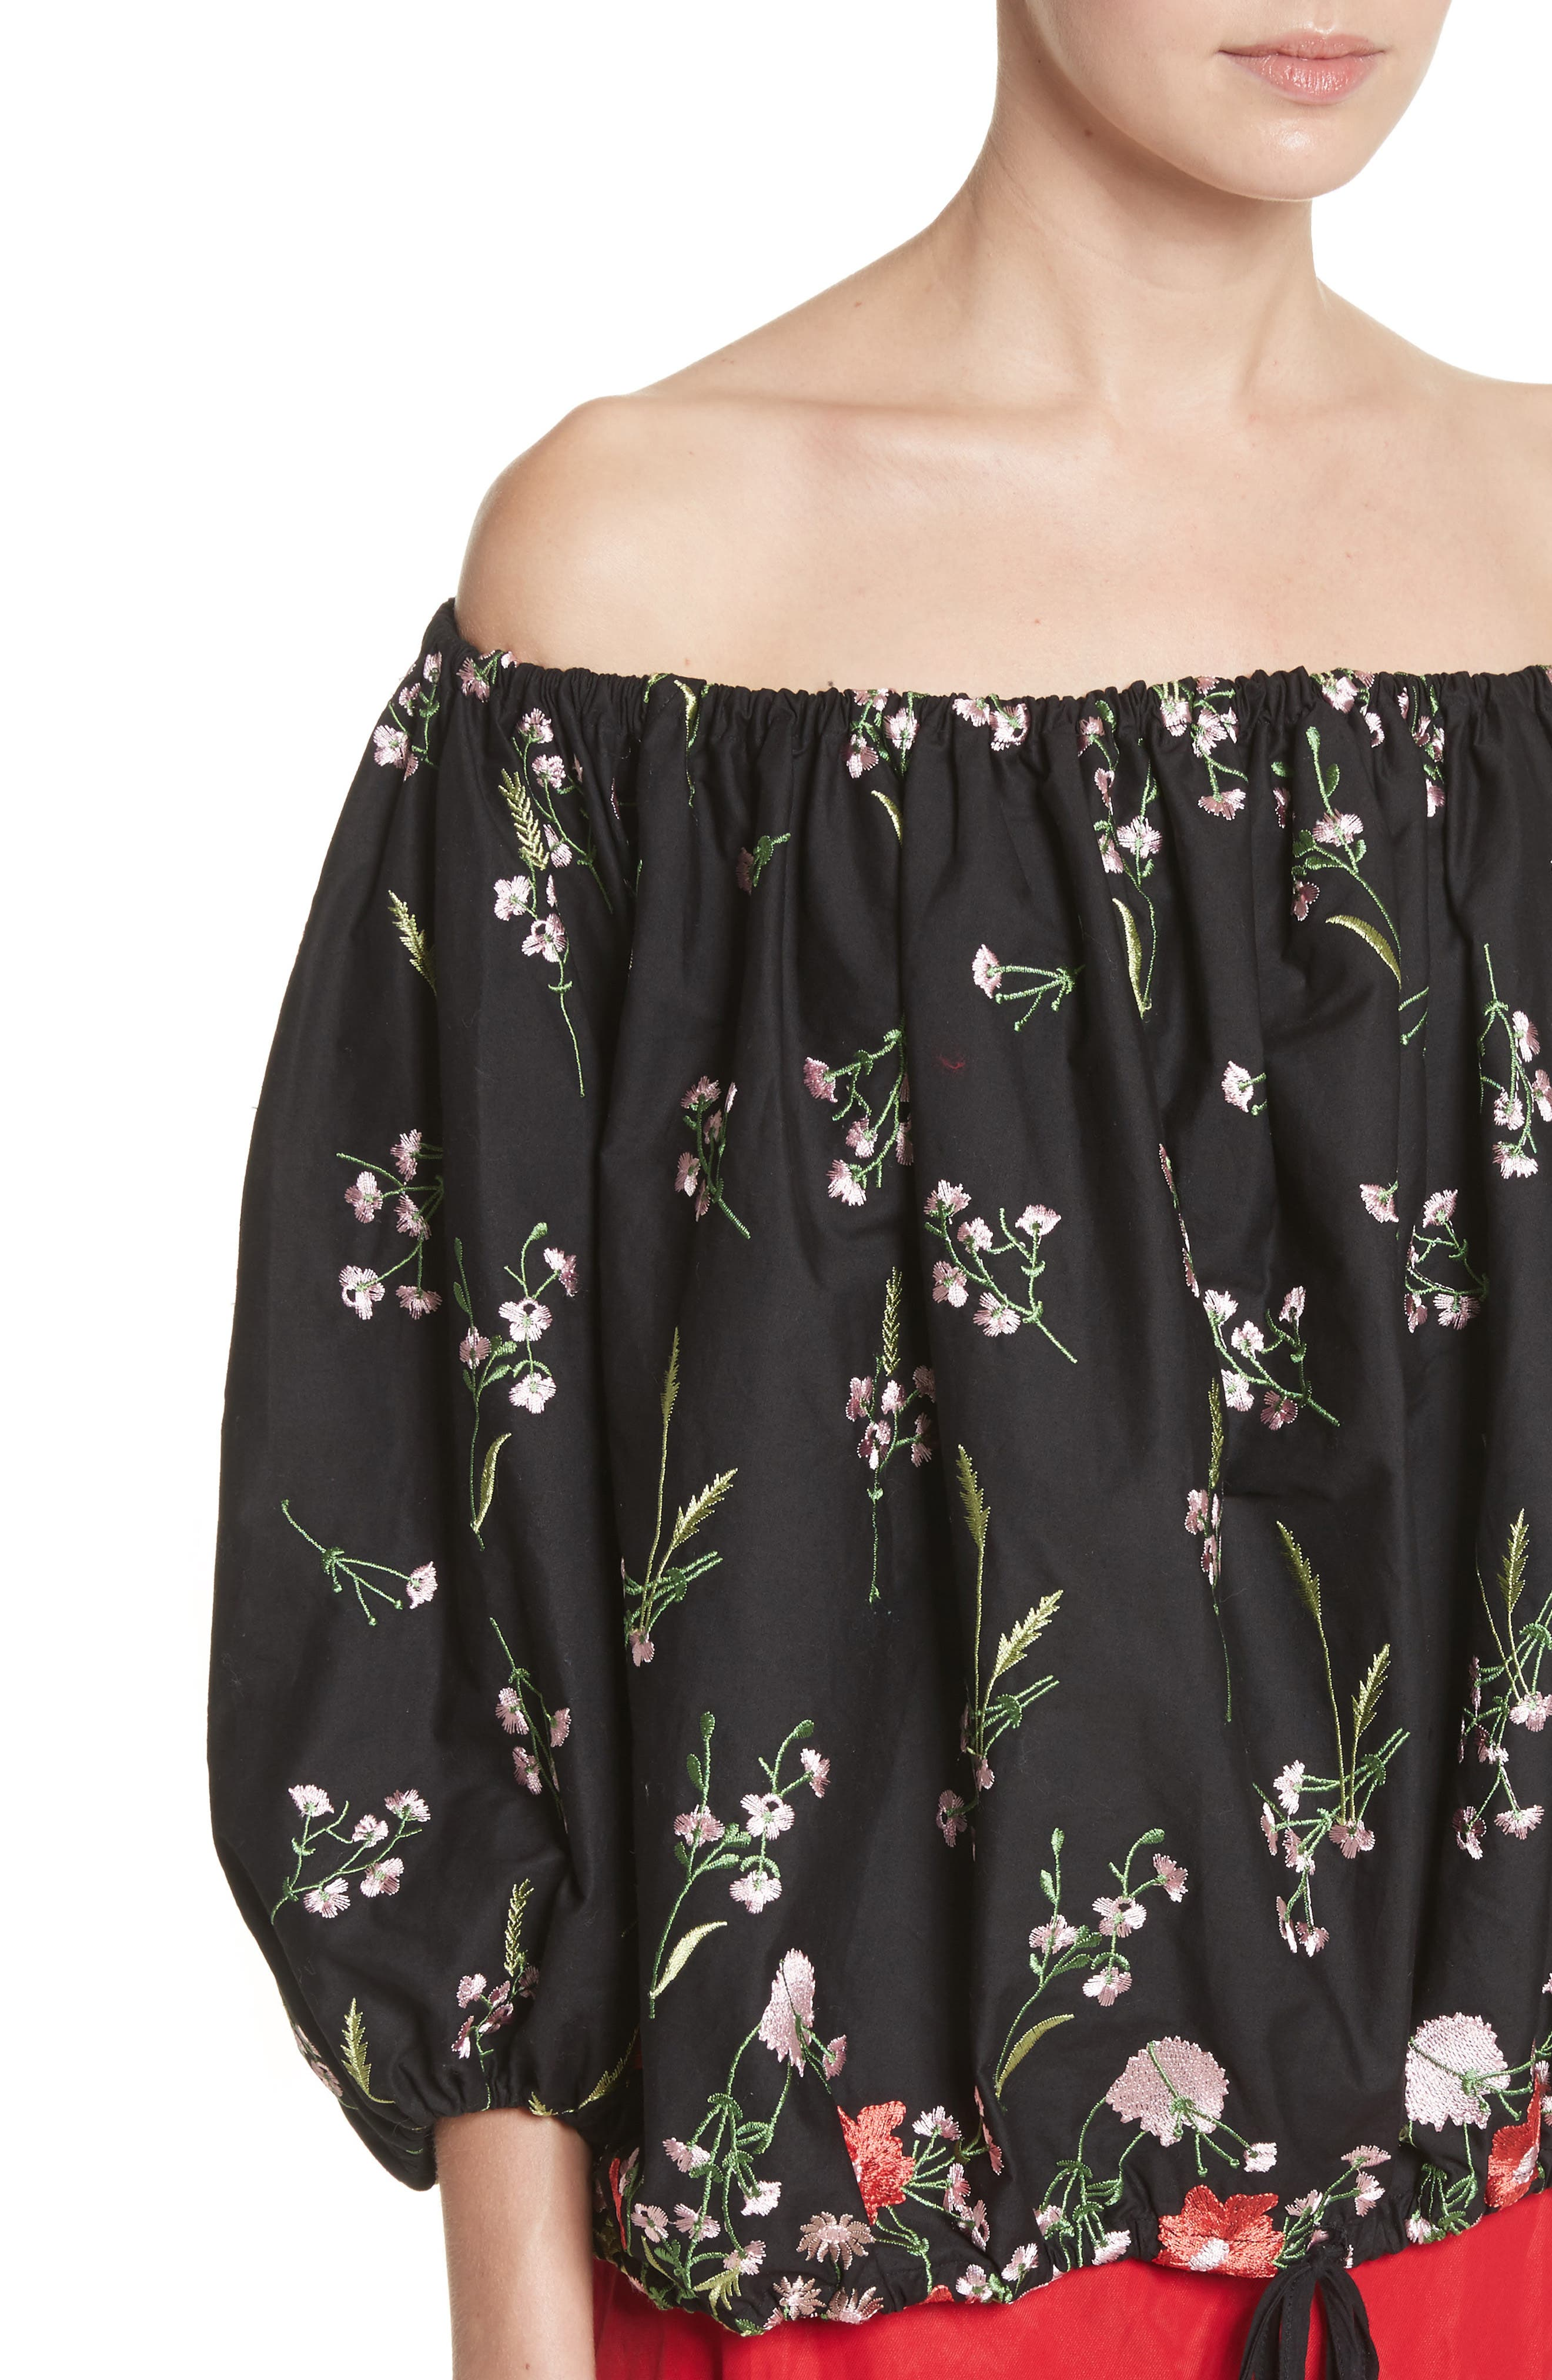 Marques'Almeida Embroidered Off the Shoulder Top,                             Alternate thumbnail 4, color,                             Black/Multi